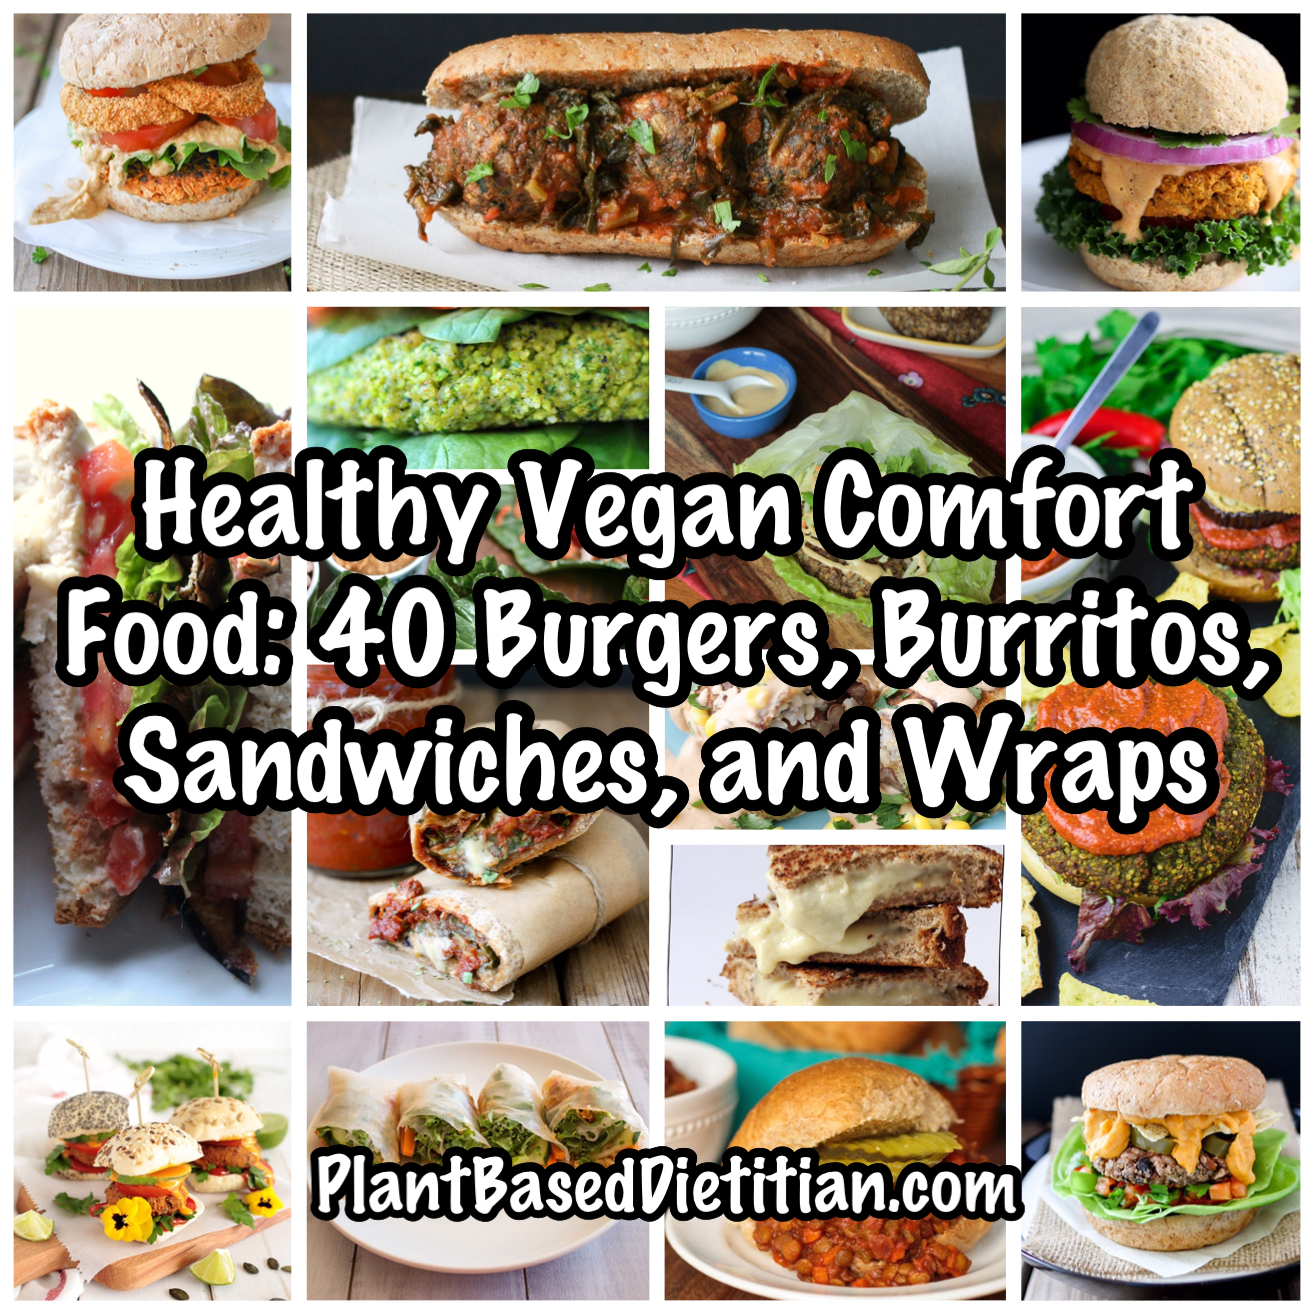 Healthy vegan comfort food 40 burgers burritos sandwiches and burgers burritos sandwiches wraps pic forumfinder Gallery